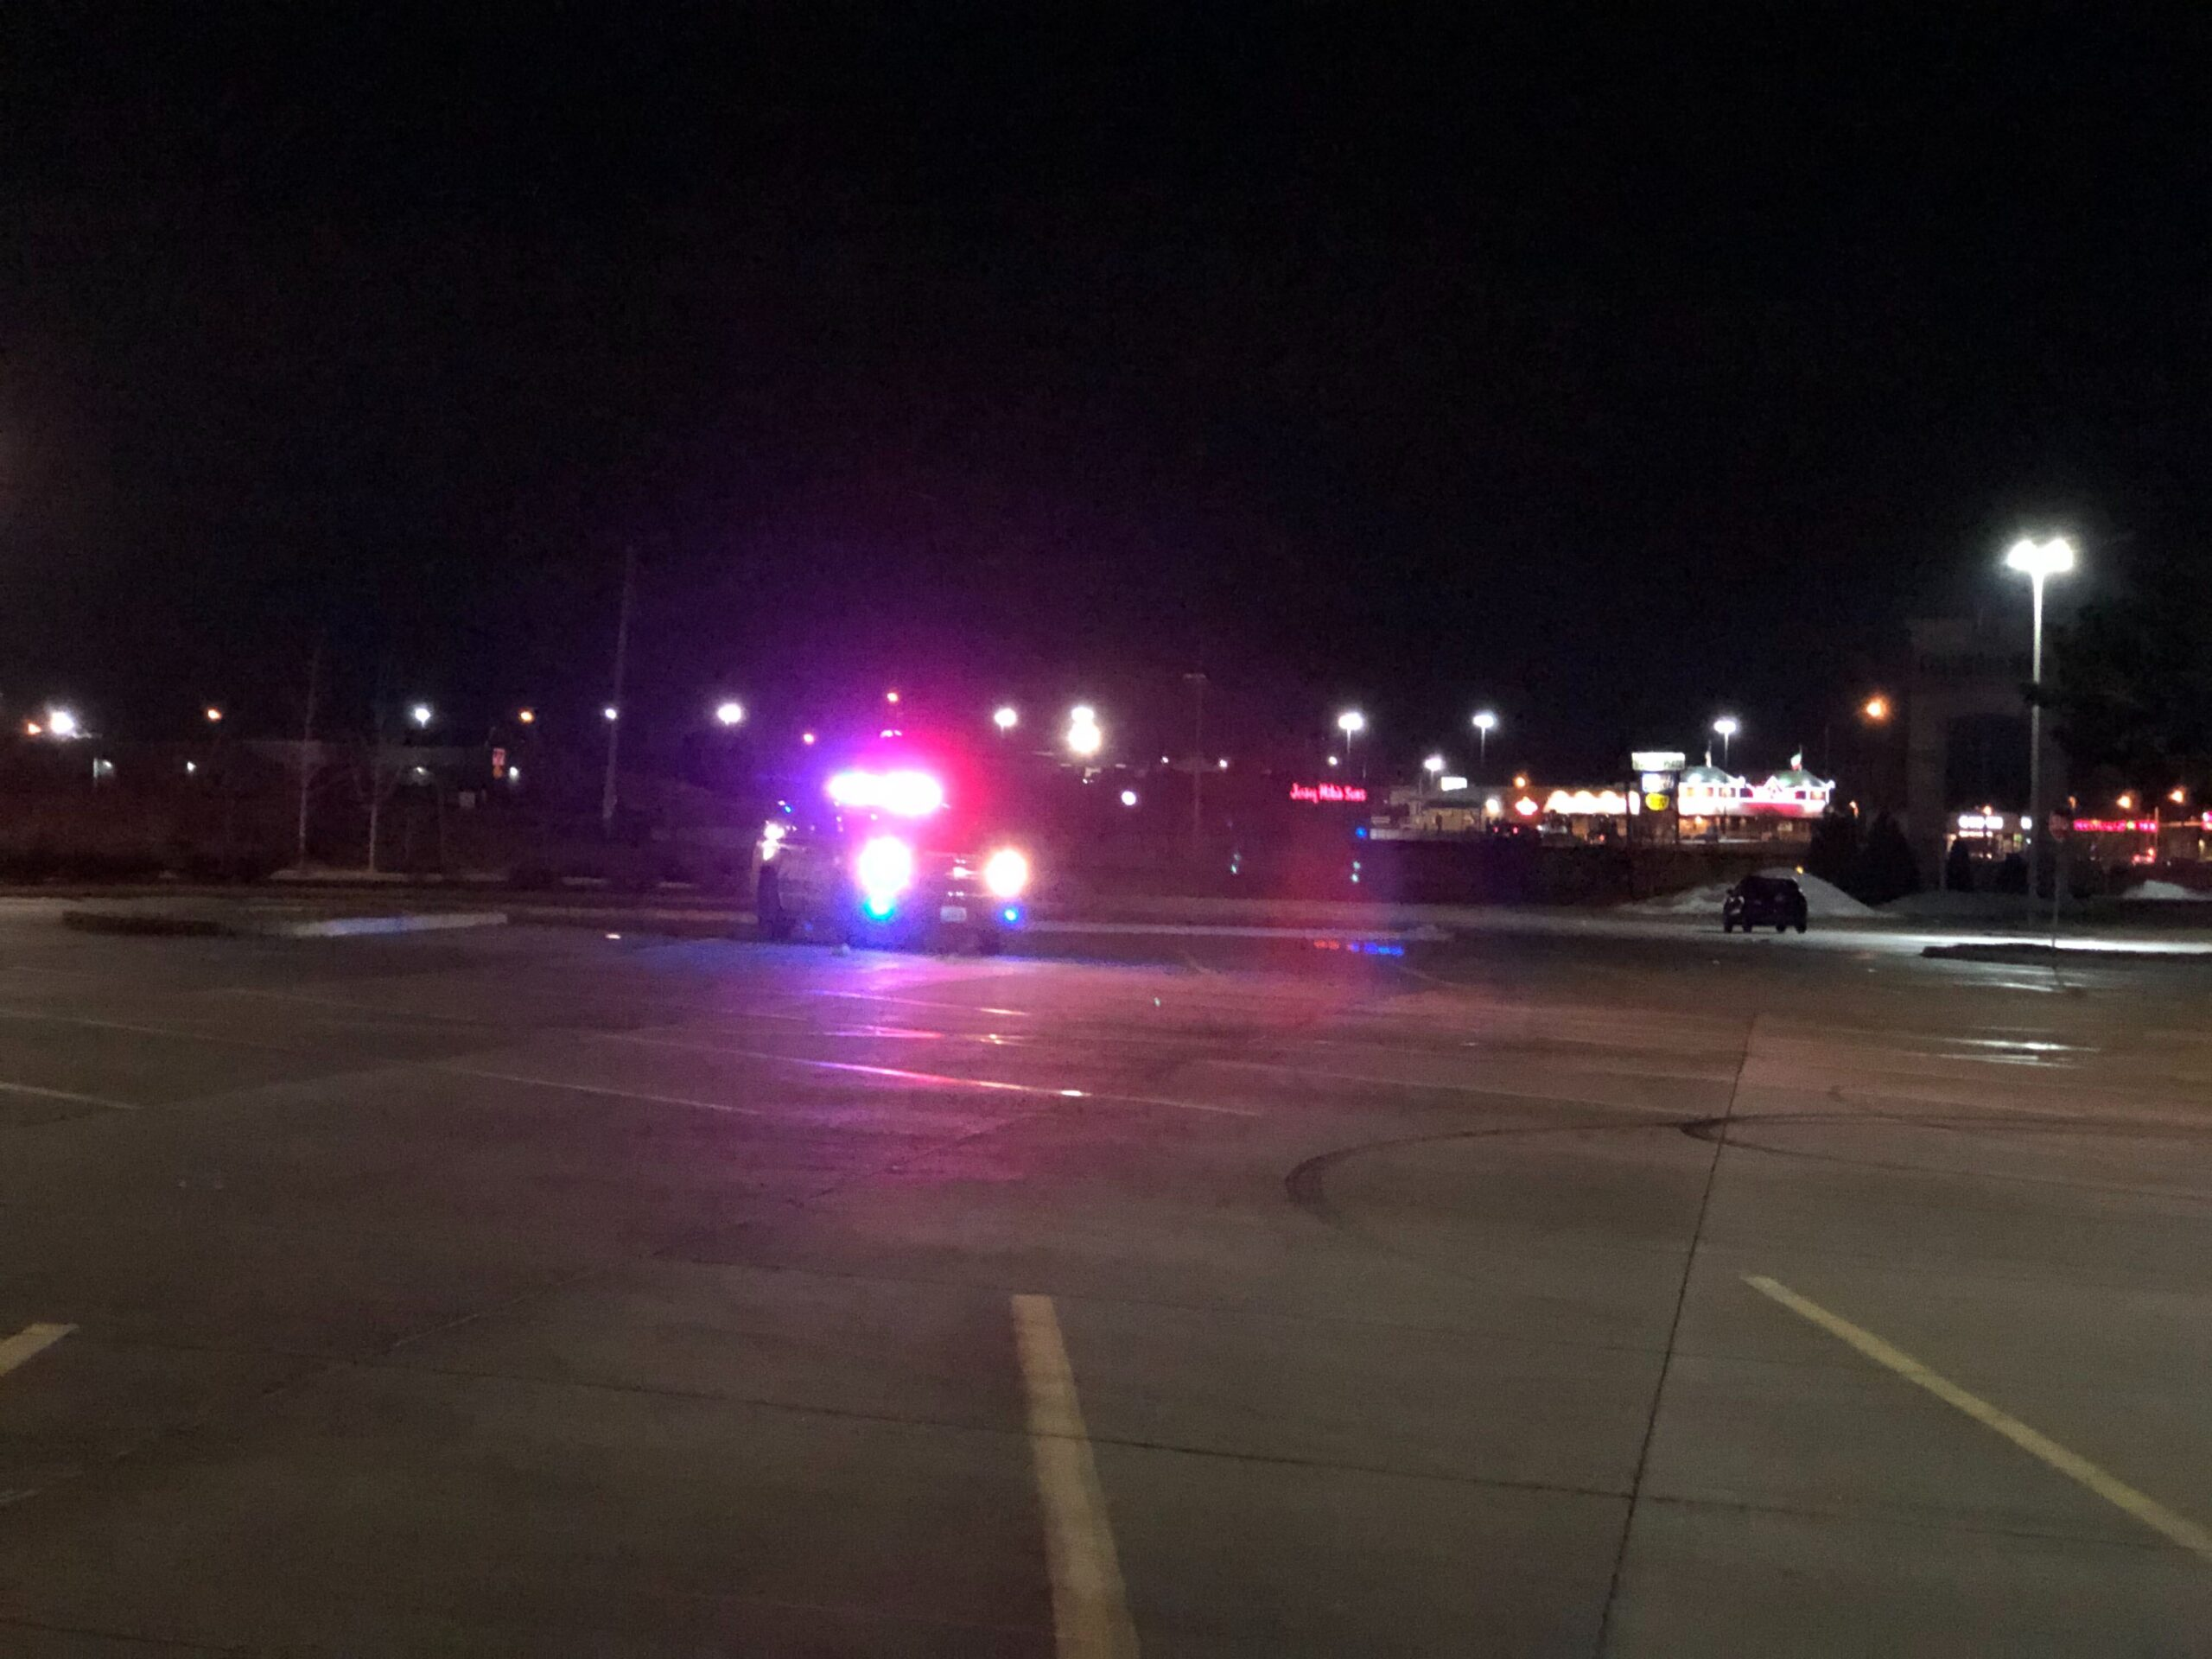 CPD set up a perimeter around the Columbia Mall area to find the driver, who fled on foot.